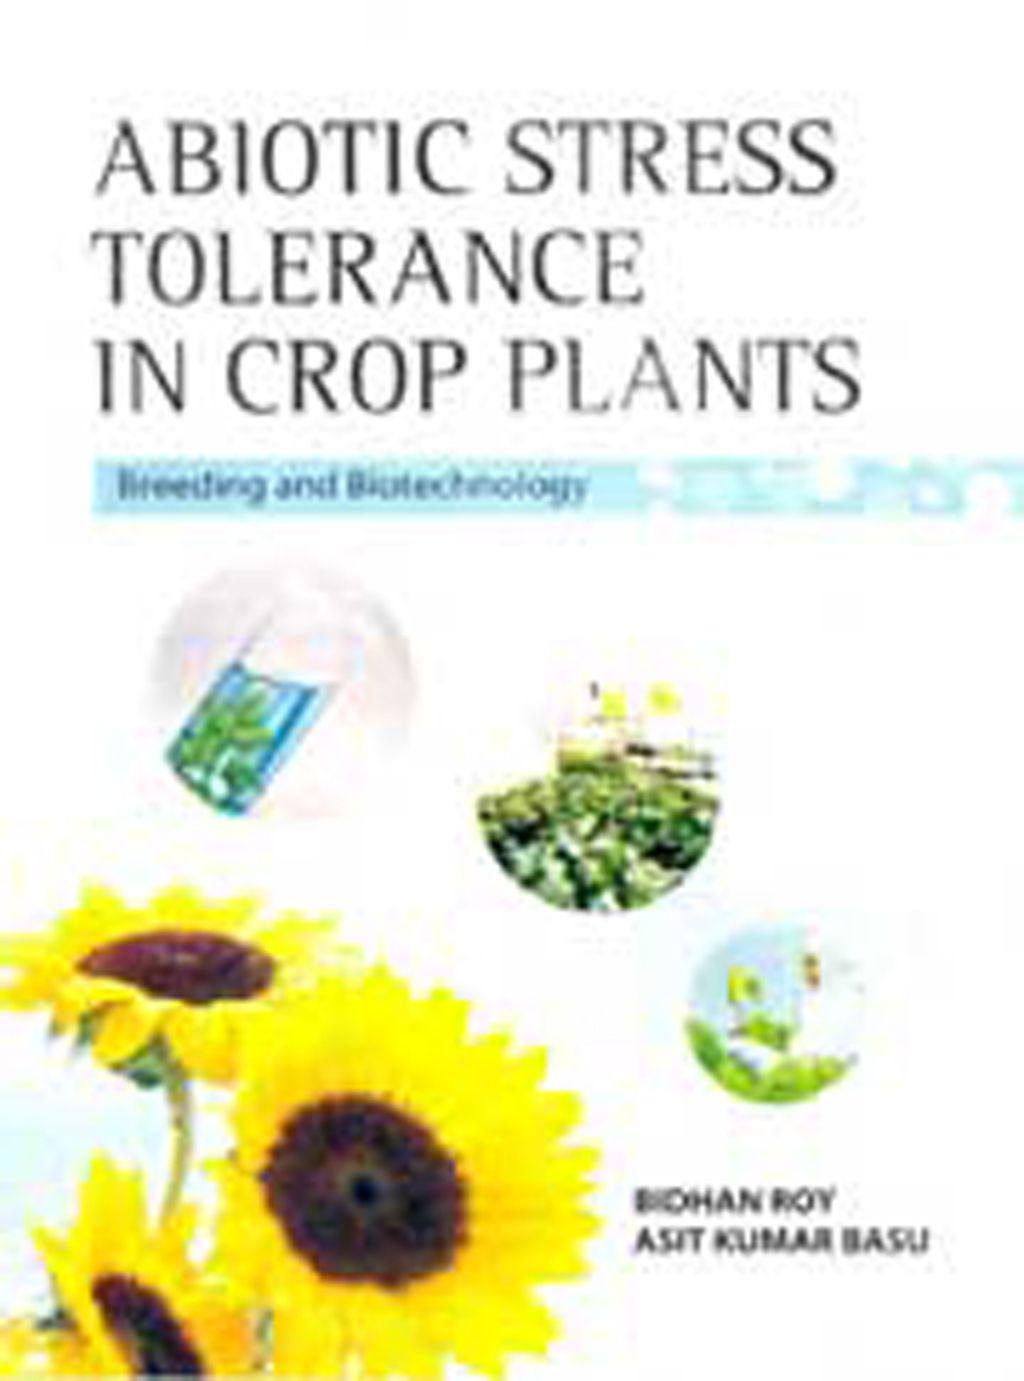 Breeding for abiotic stress tolerance in common bean: present and future challenges